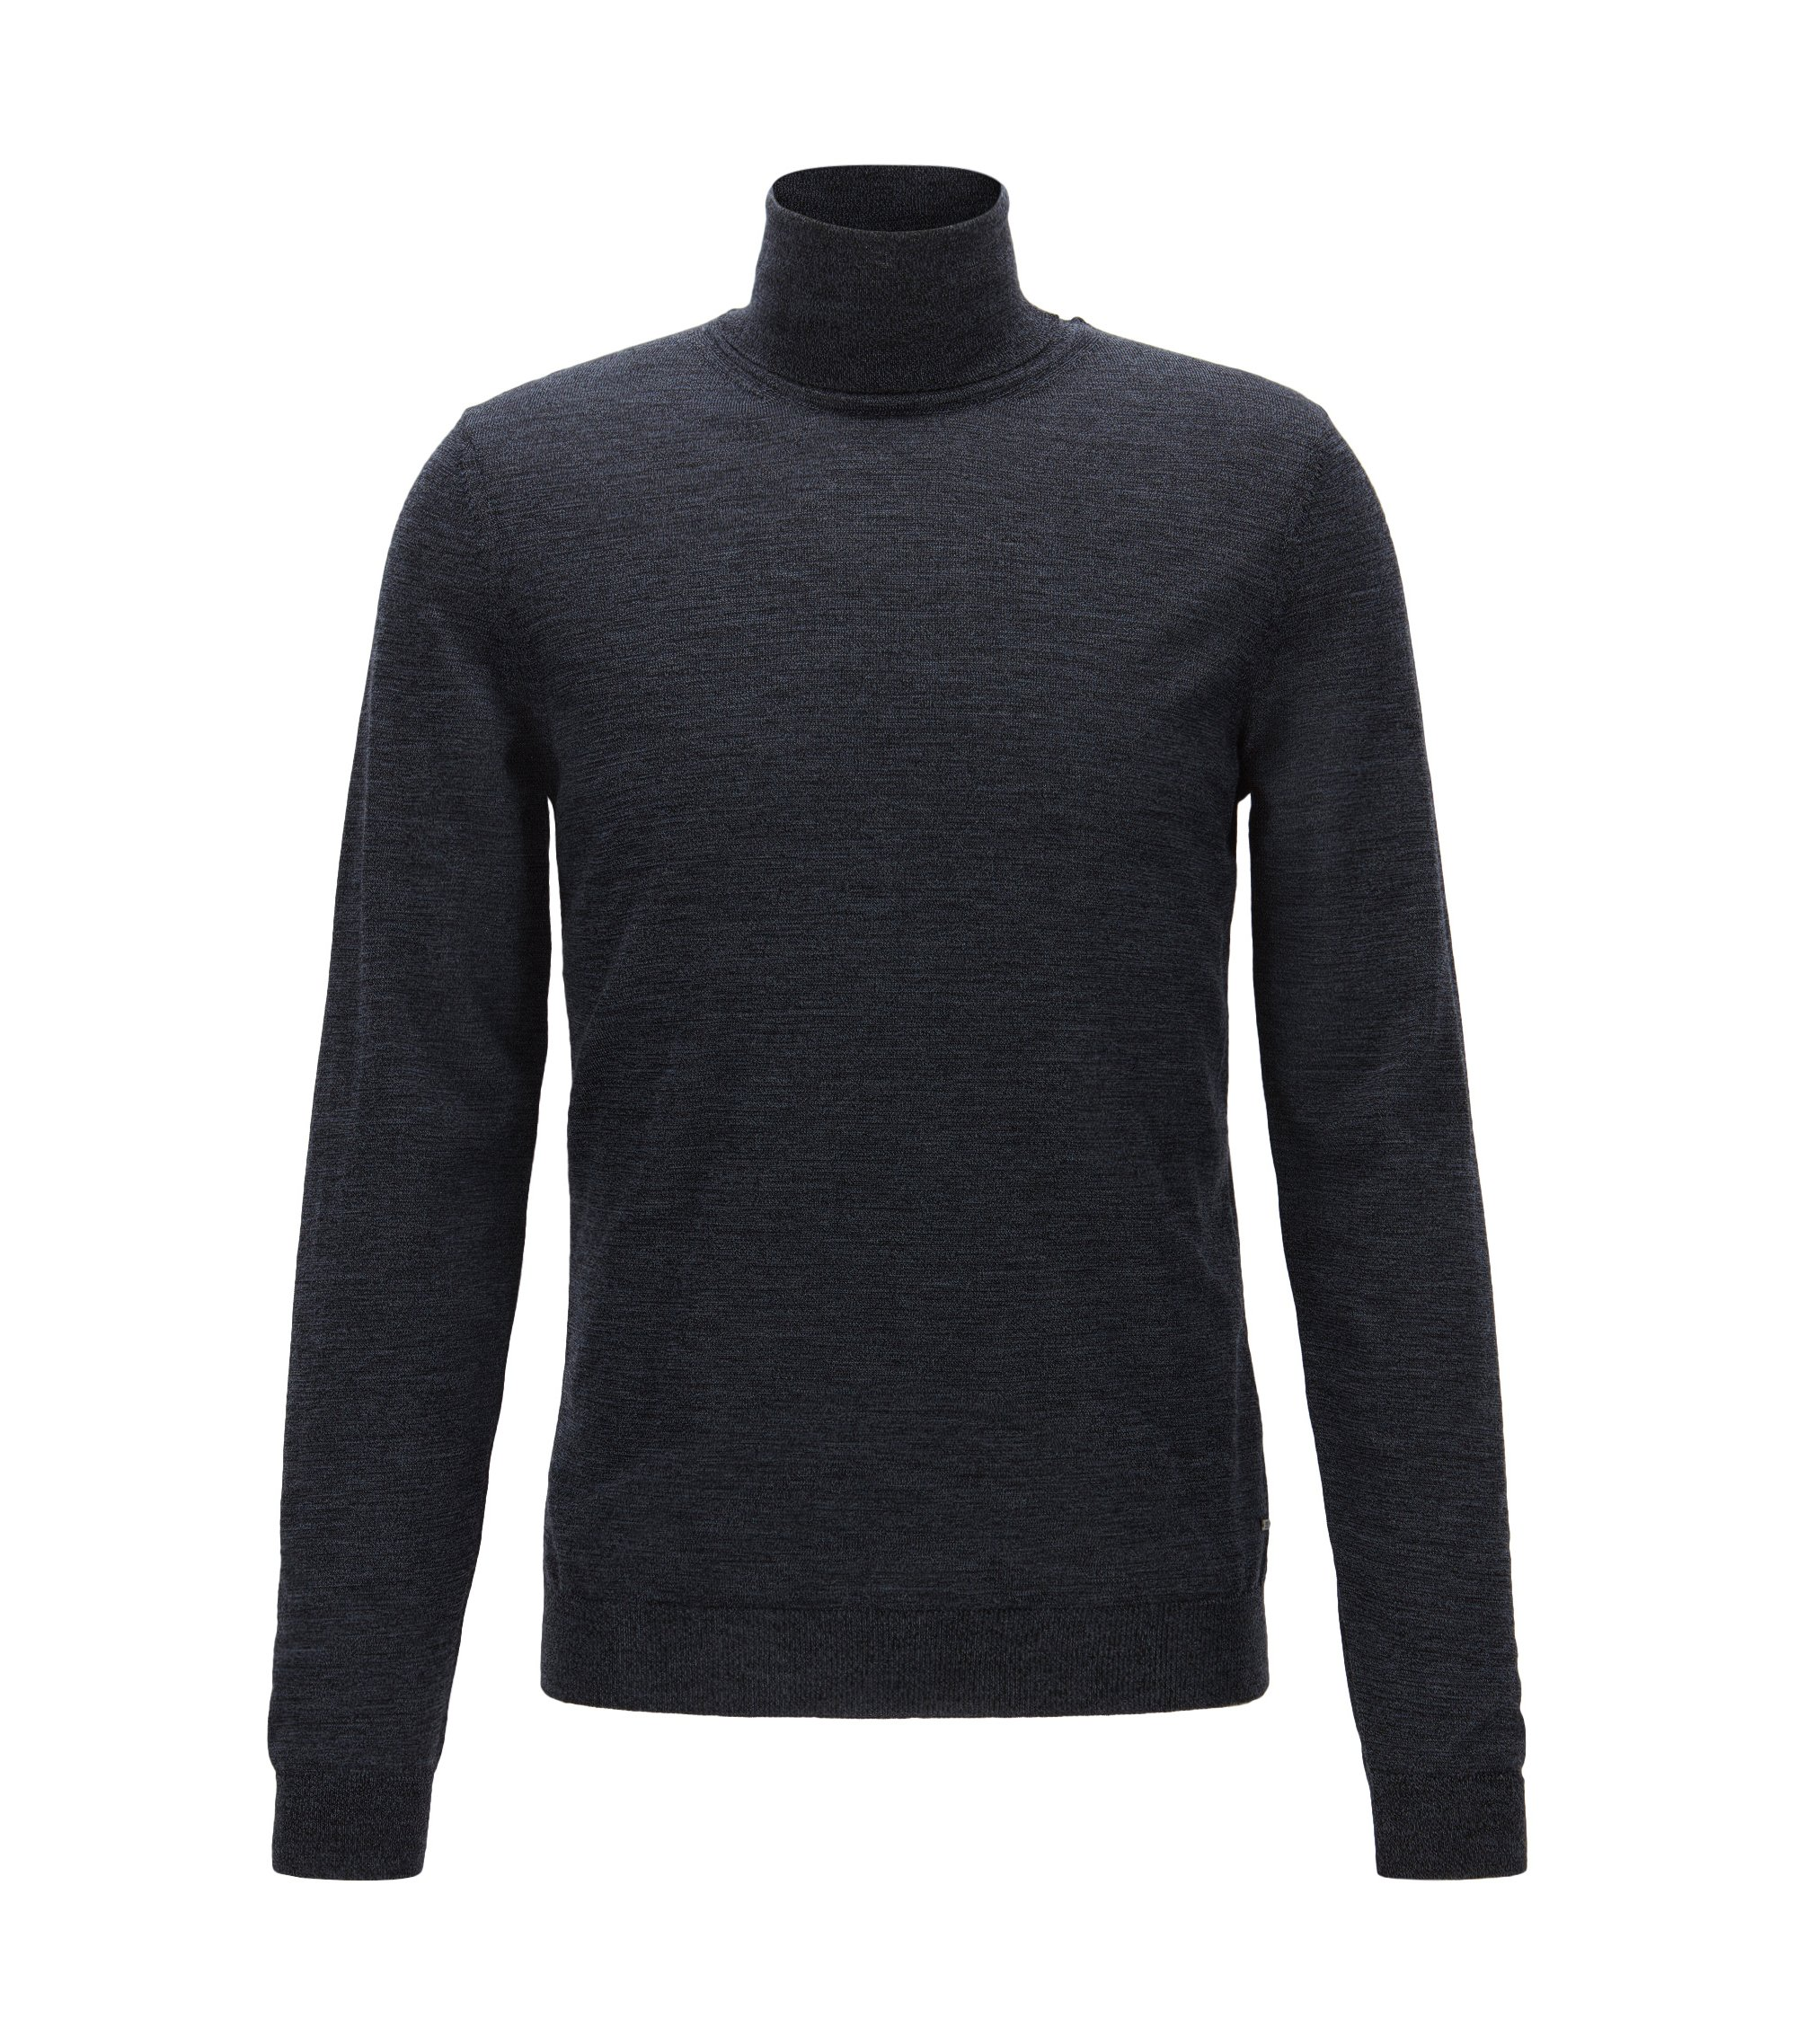 Merino Wool Turtleneck Sweater | Musso N, Dark Blue